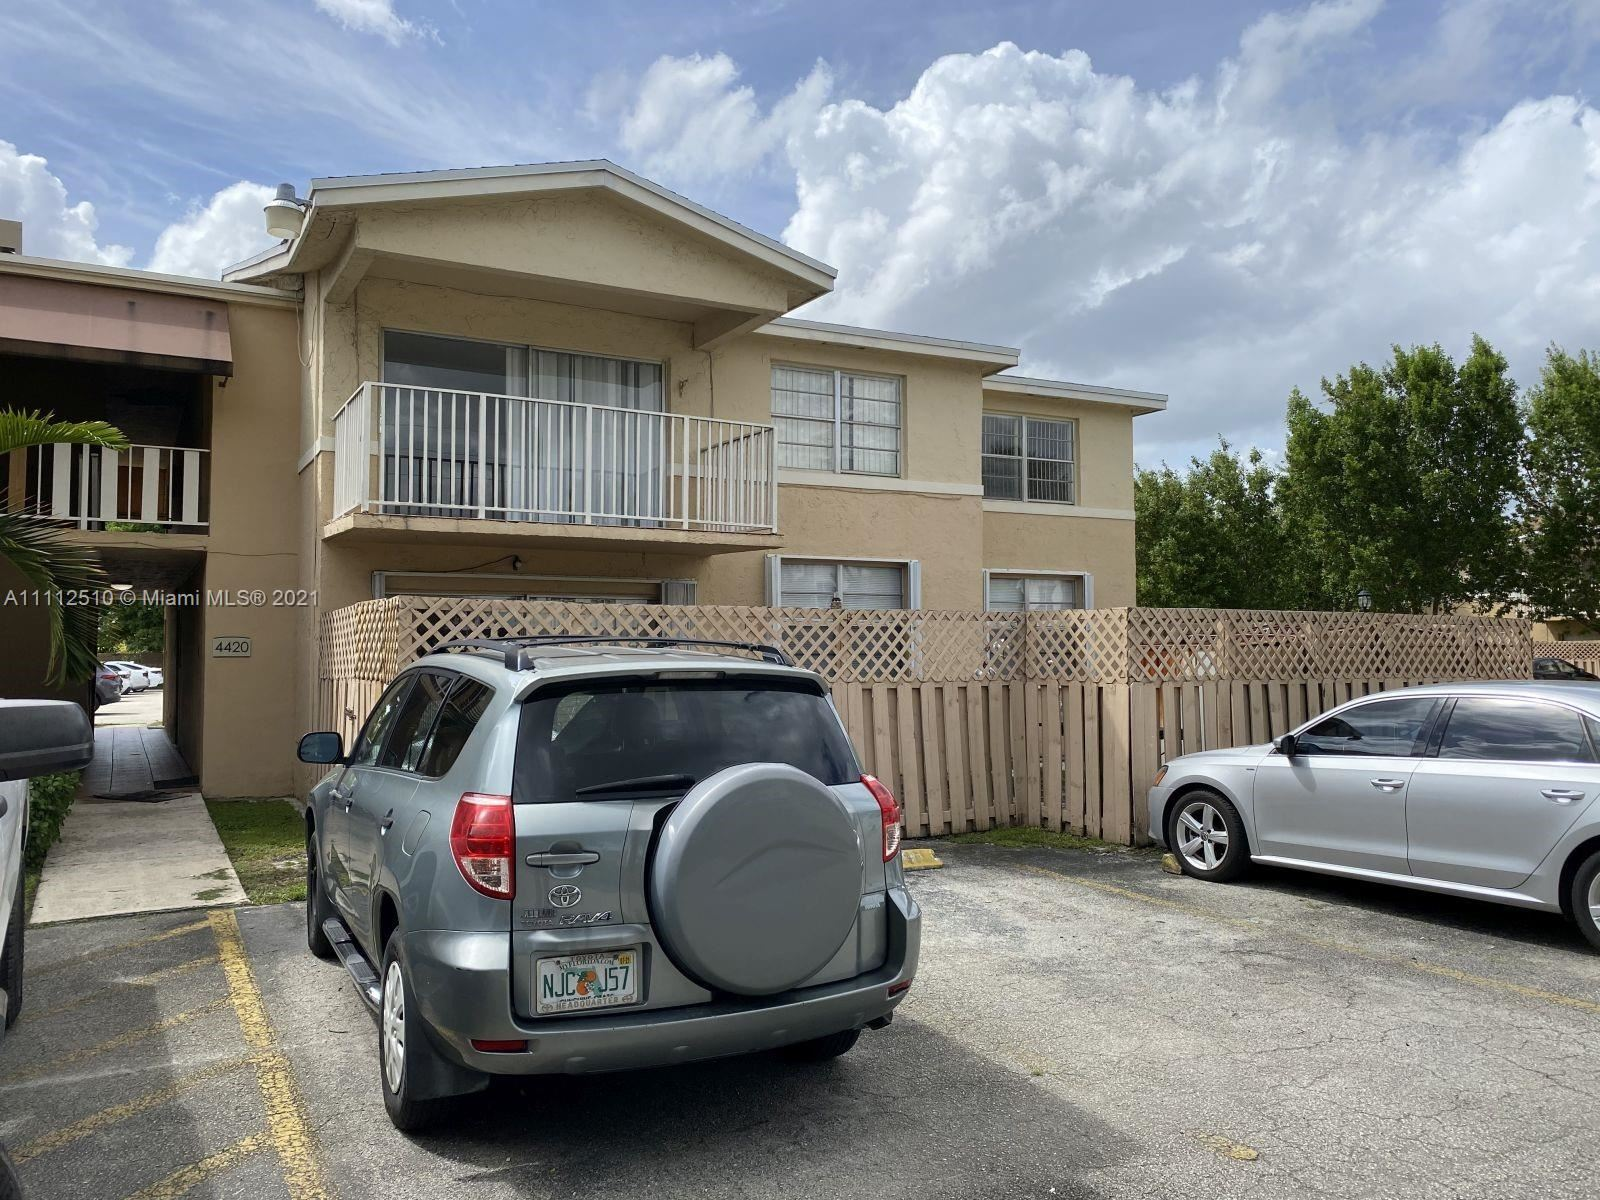 Photo of 4420 NW 79th Ave #1H, Doral, FL 33166 (MLS # A11112510)